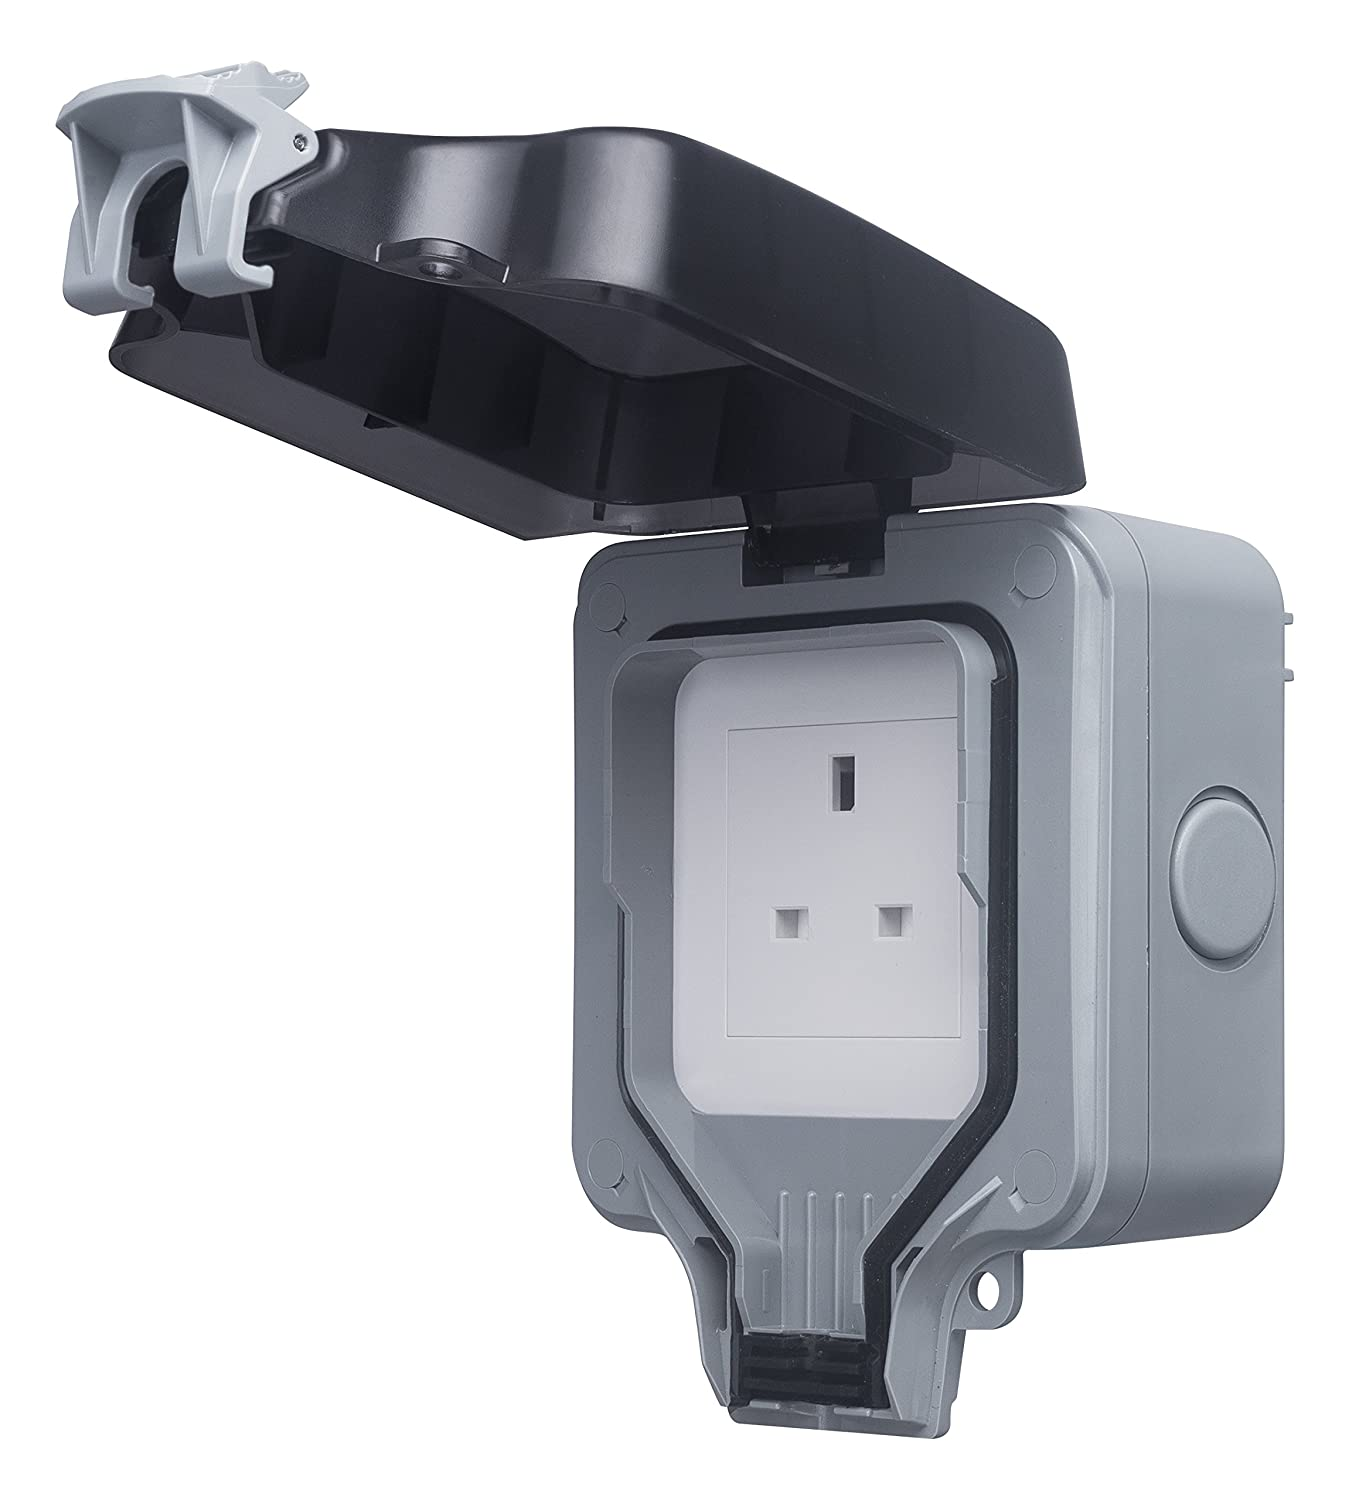 BG Electrical WP23 13amp Single Weatherproof Outdoor Un-Switched Power Socket IP66 Rated Nexus (Jiaxing) WP23-01